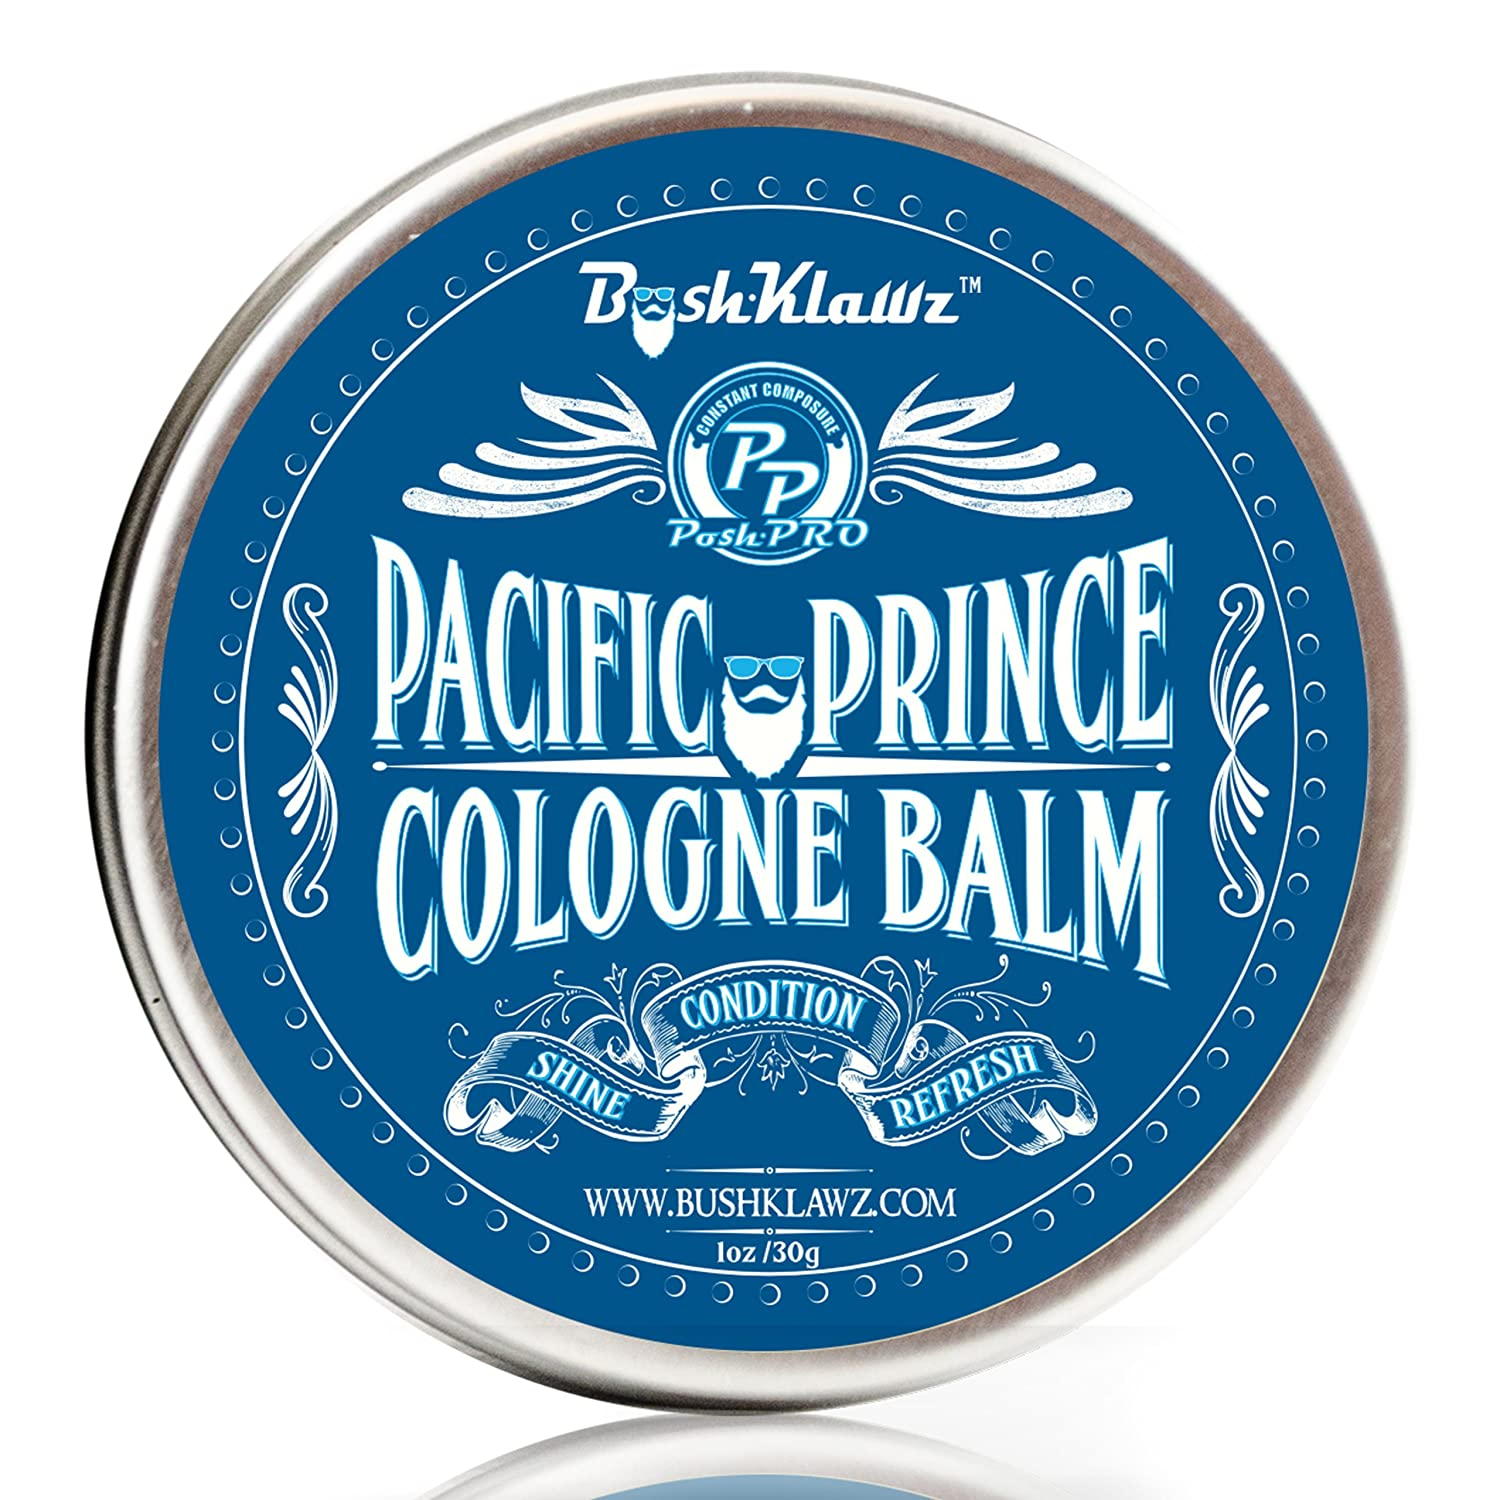 Lumber Prince Solid Cologne Balm - Distinctly Masculine Modern LumberJack Scent Alcohol Free Cologne for travel Best Gift for Men BushKlawz